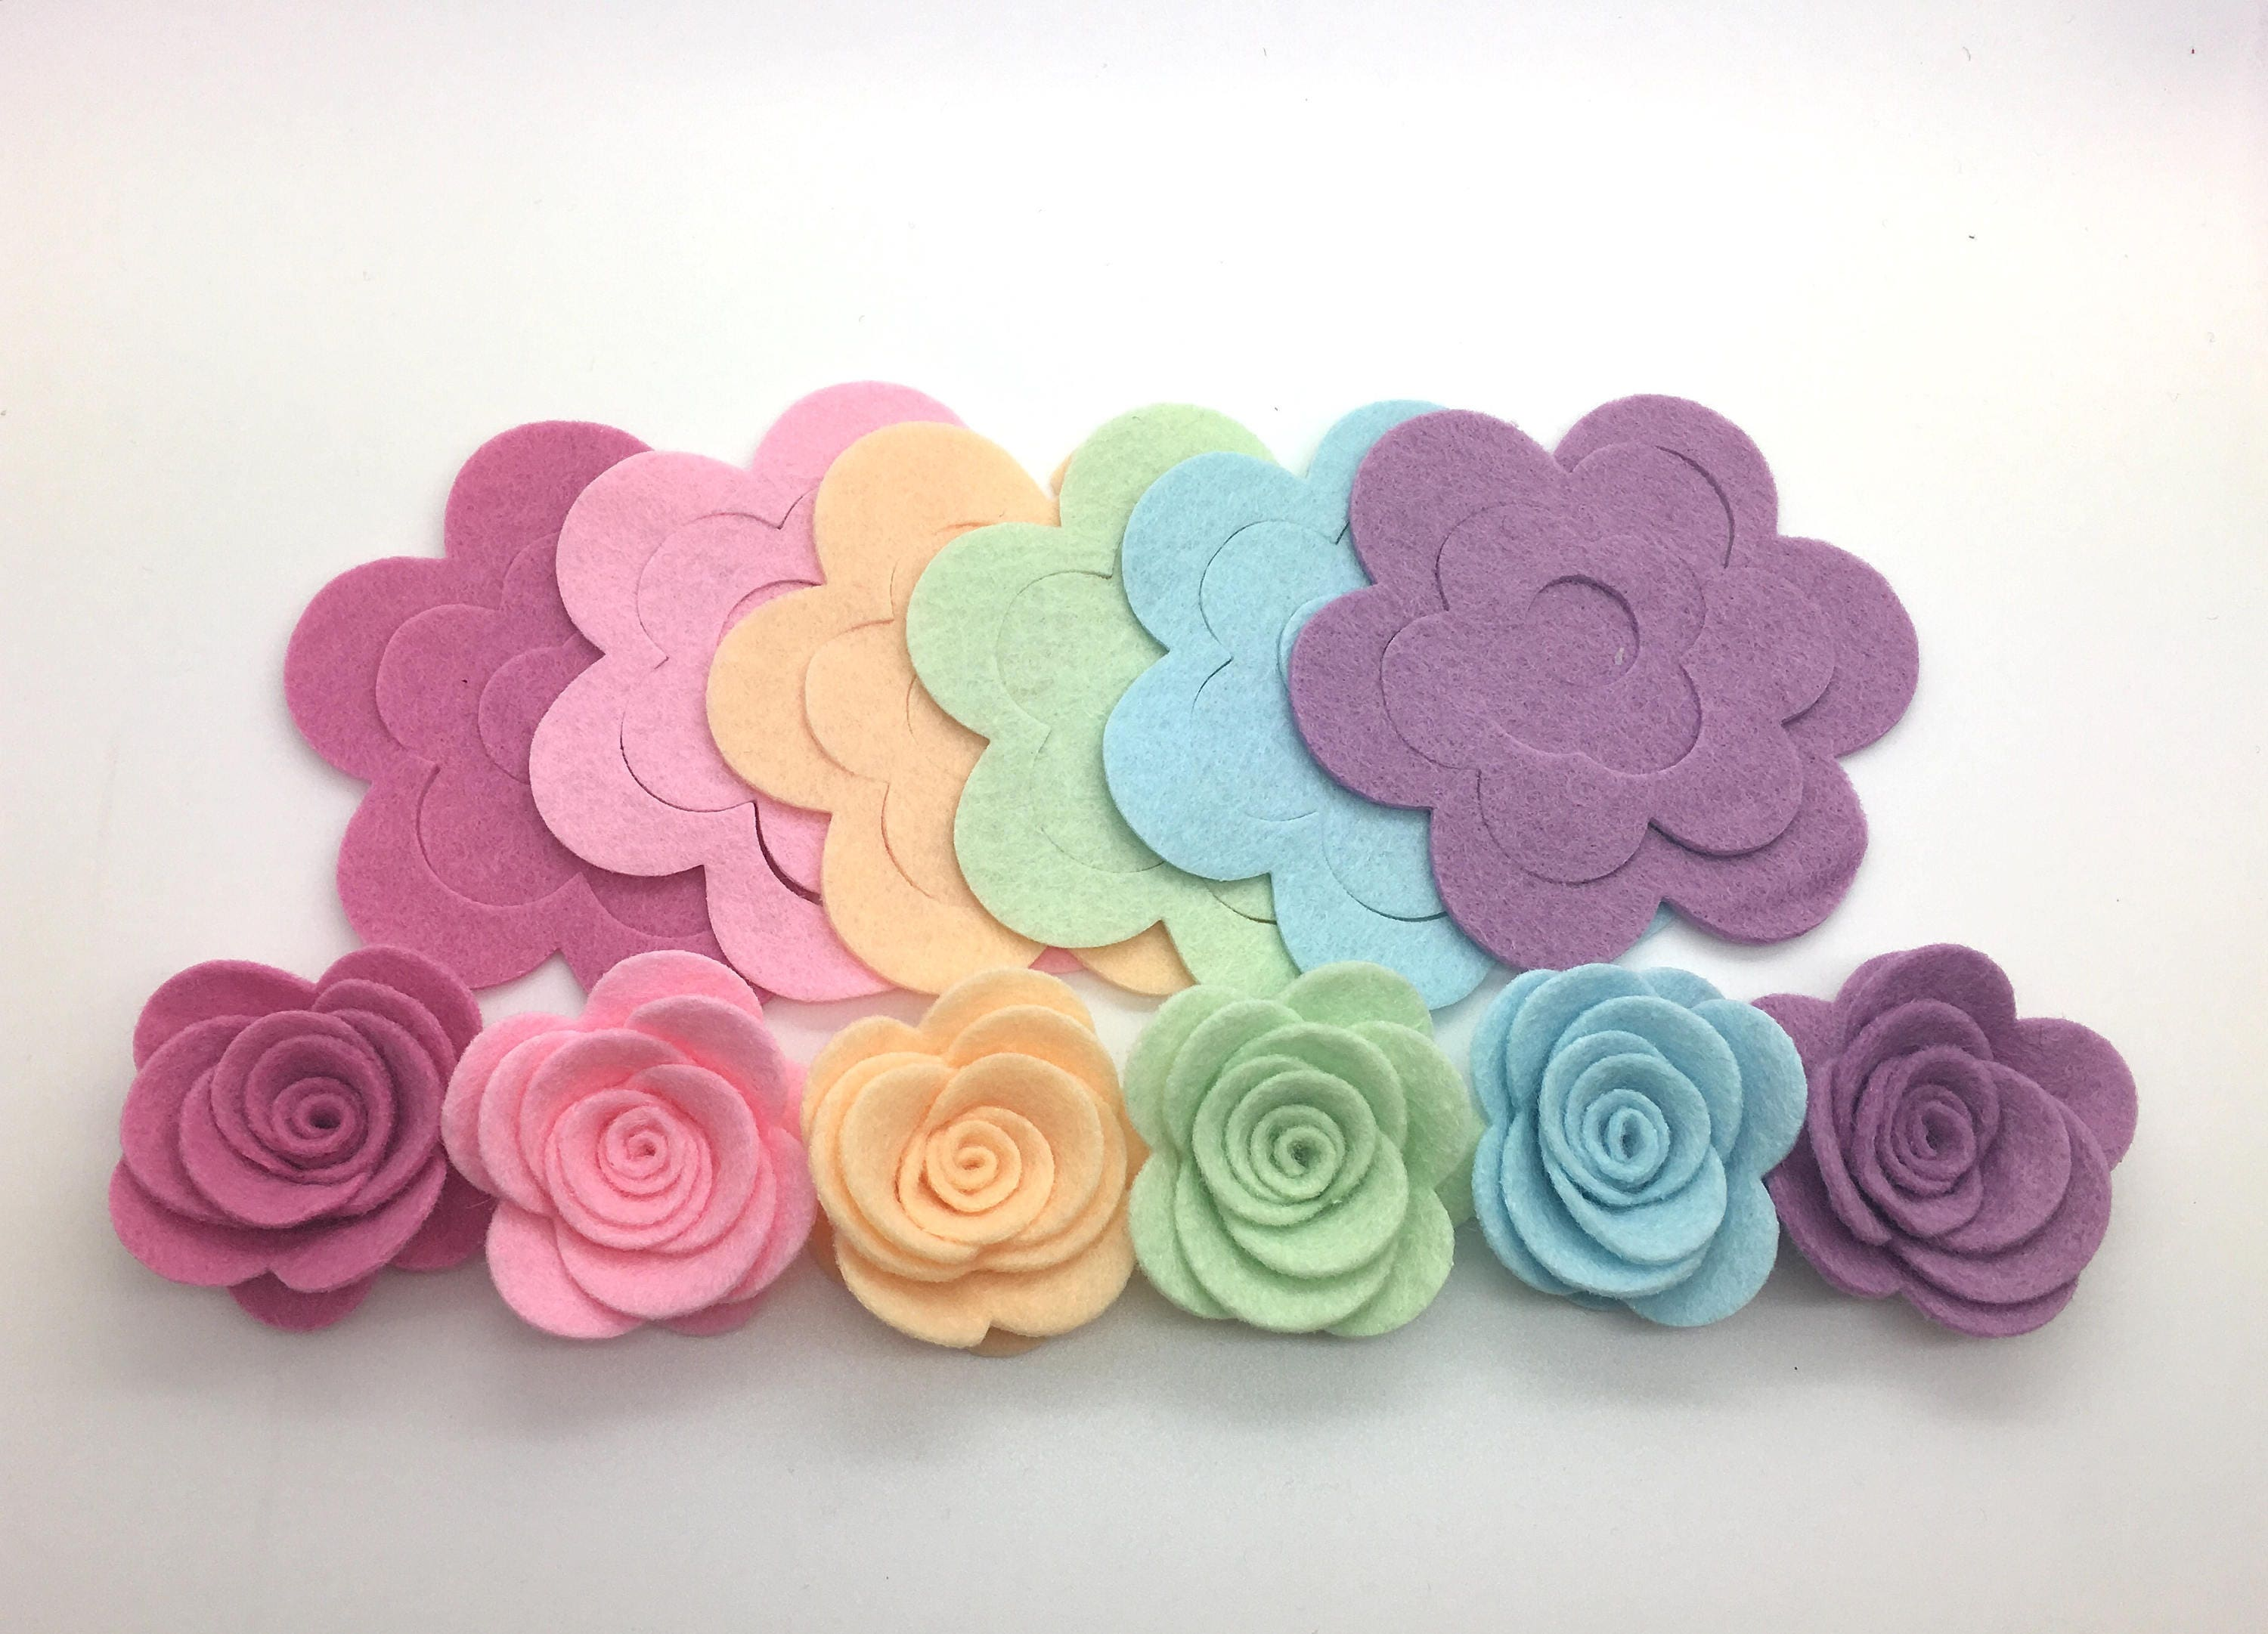 6pcs Rainbow Felt Rose Flowers Easter Felt Flowers Diy Felt Flower Die Cut Felt Flower Felt Flowers